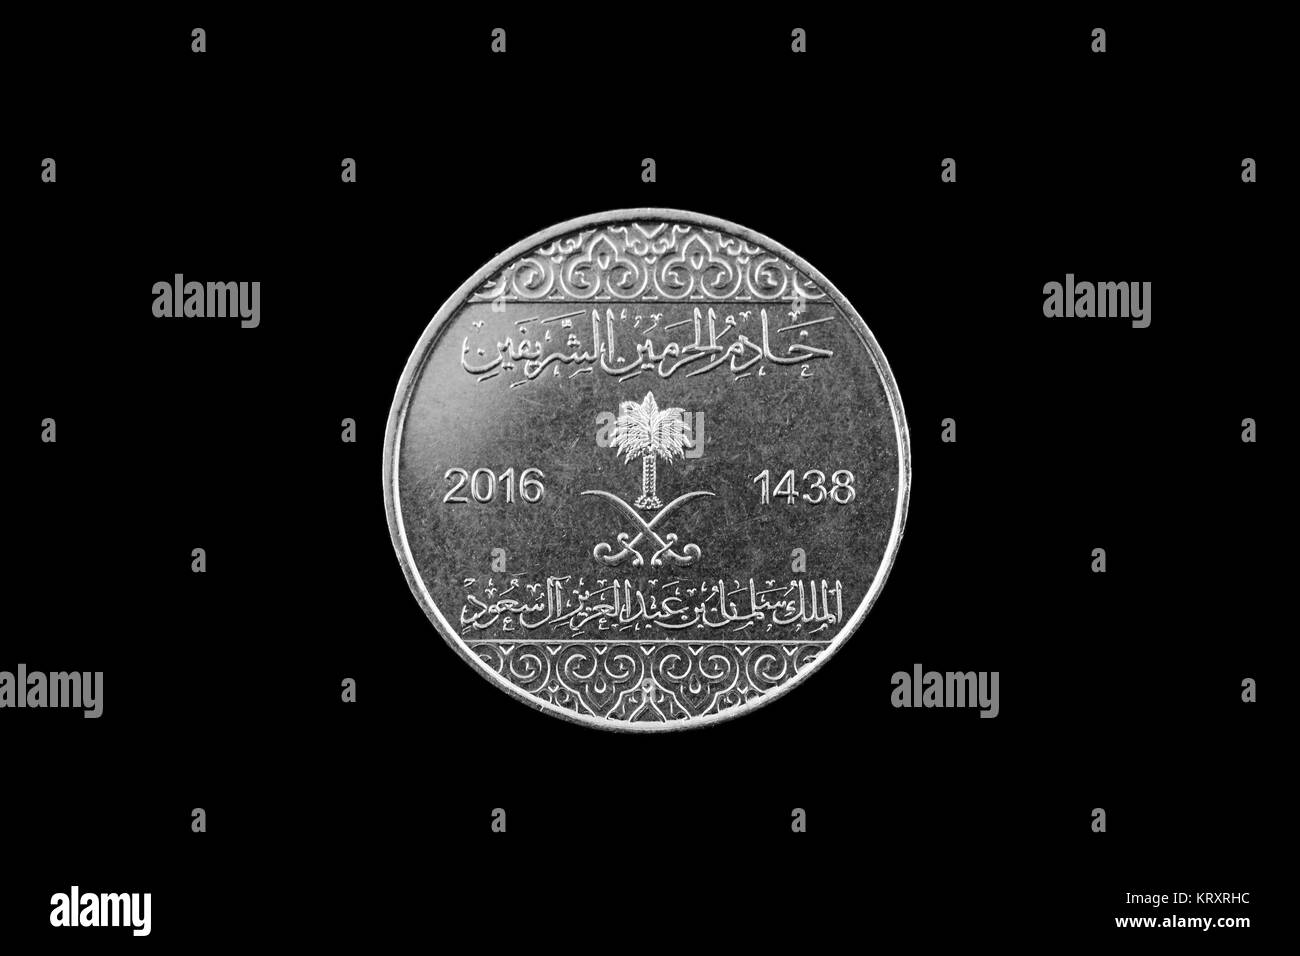 A super macro image of a silver saudi arabian coin isolated on a black background - Stock Image